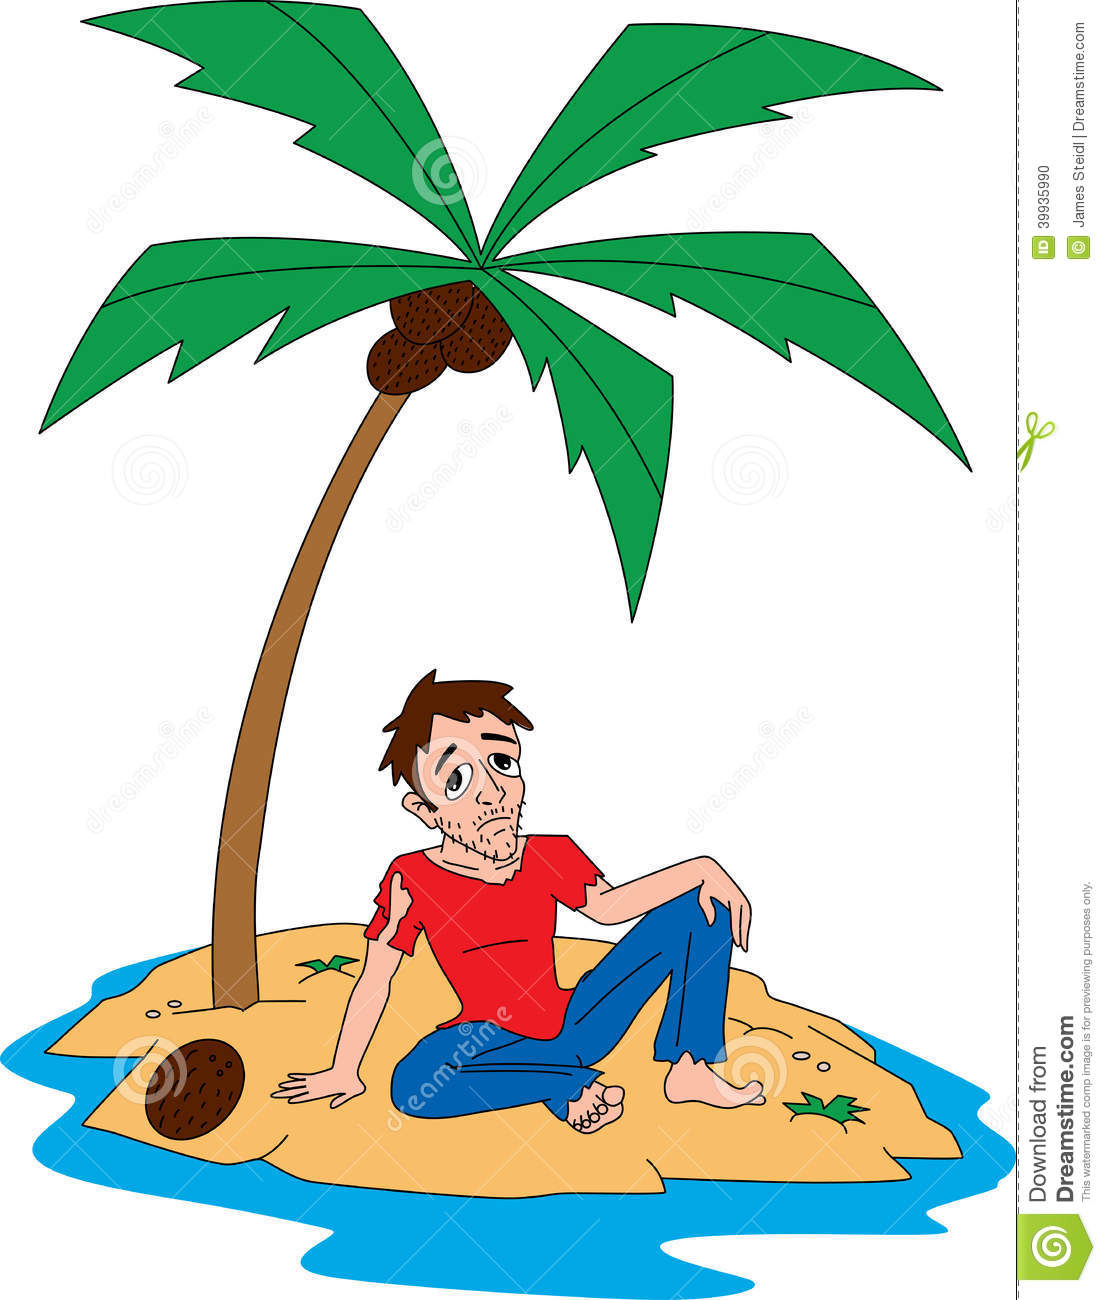 Man on deserted island free clipart.